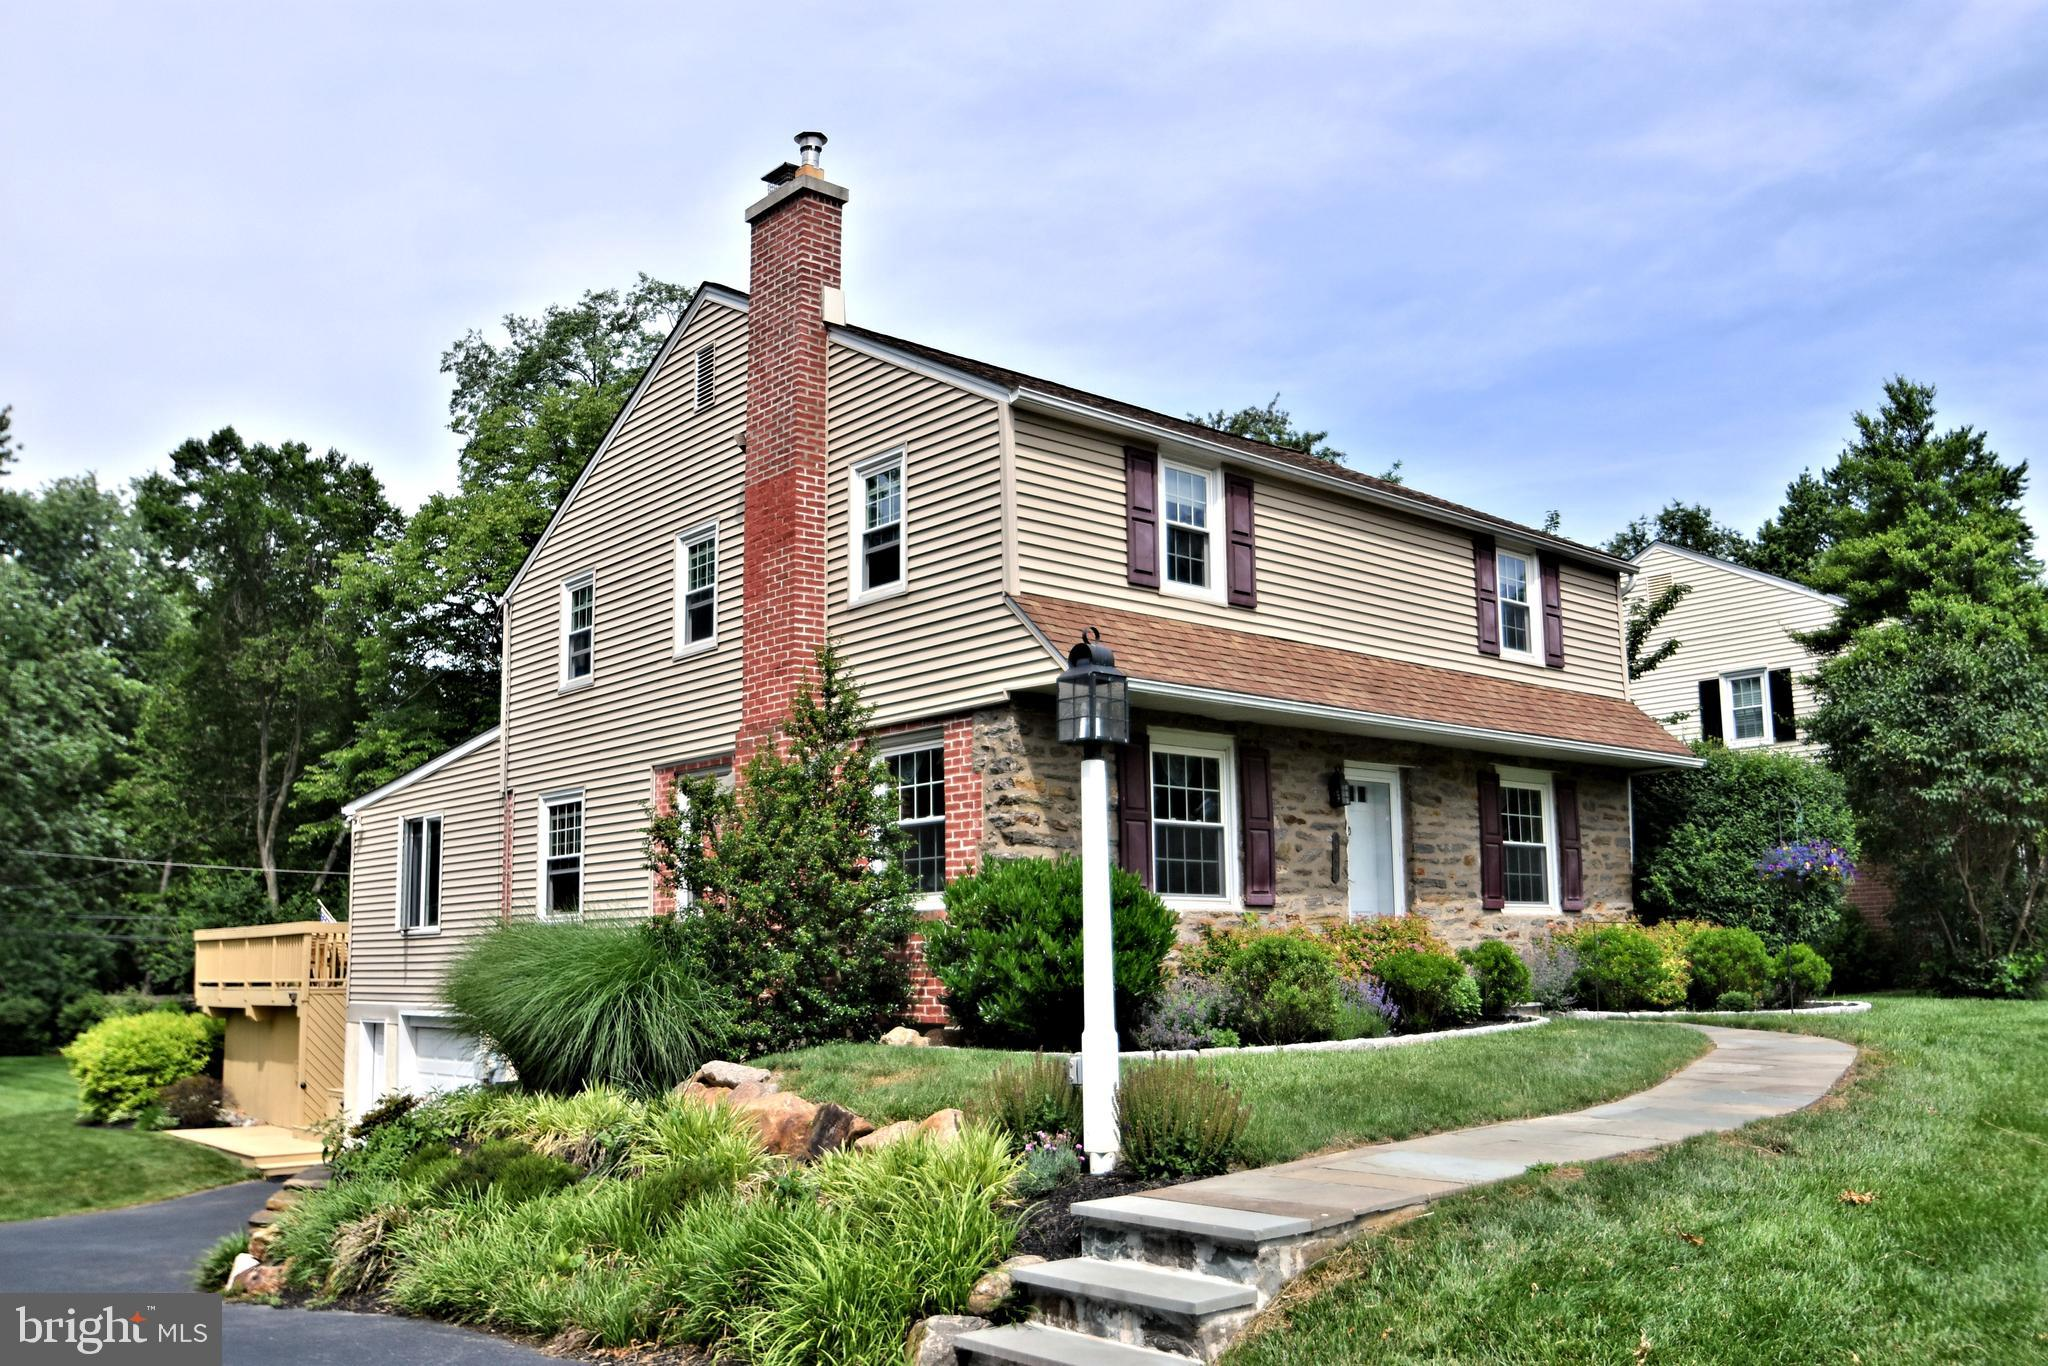 909 Atwood Road, Glenside, PA 19038